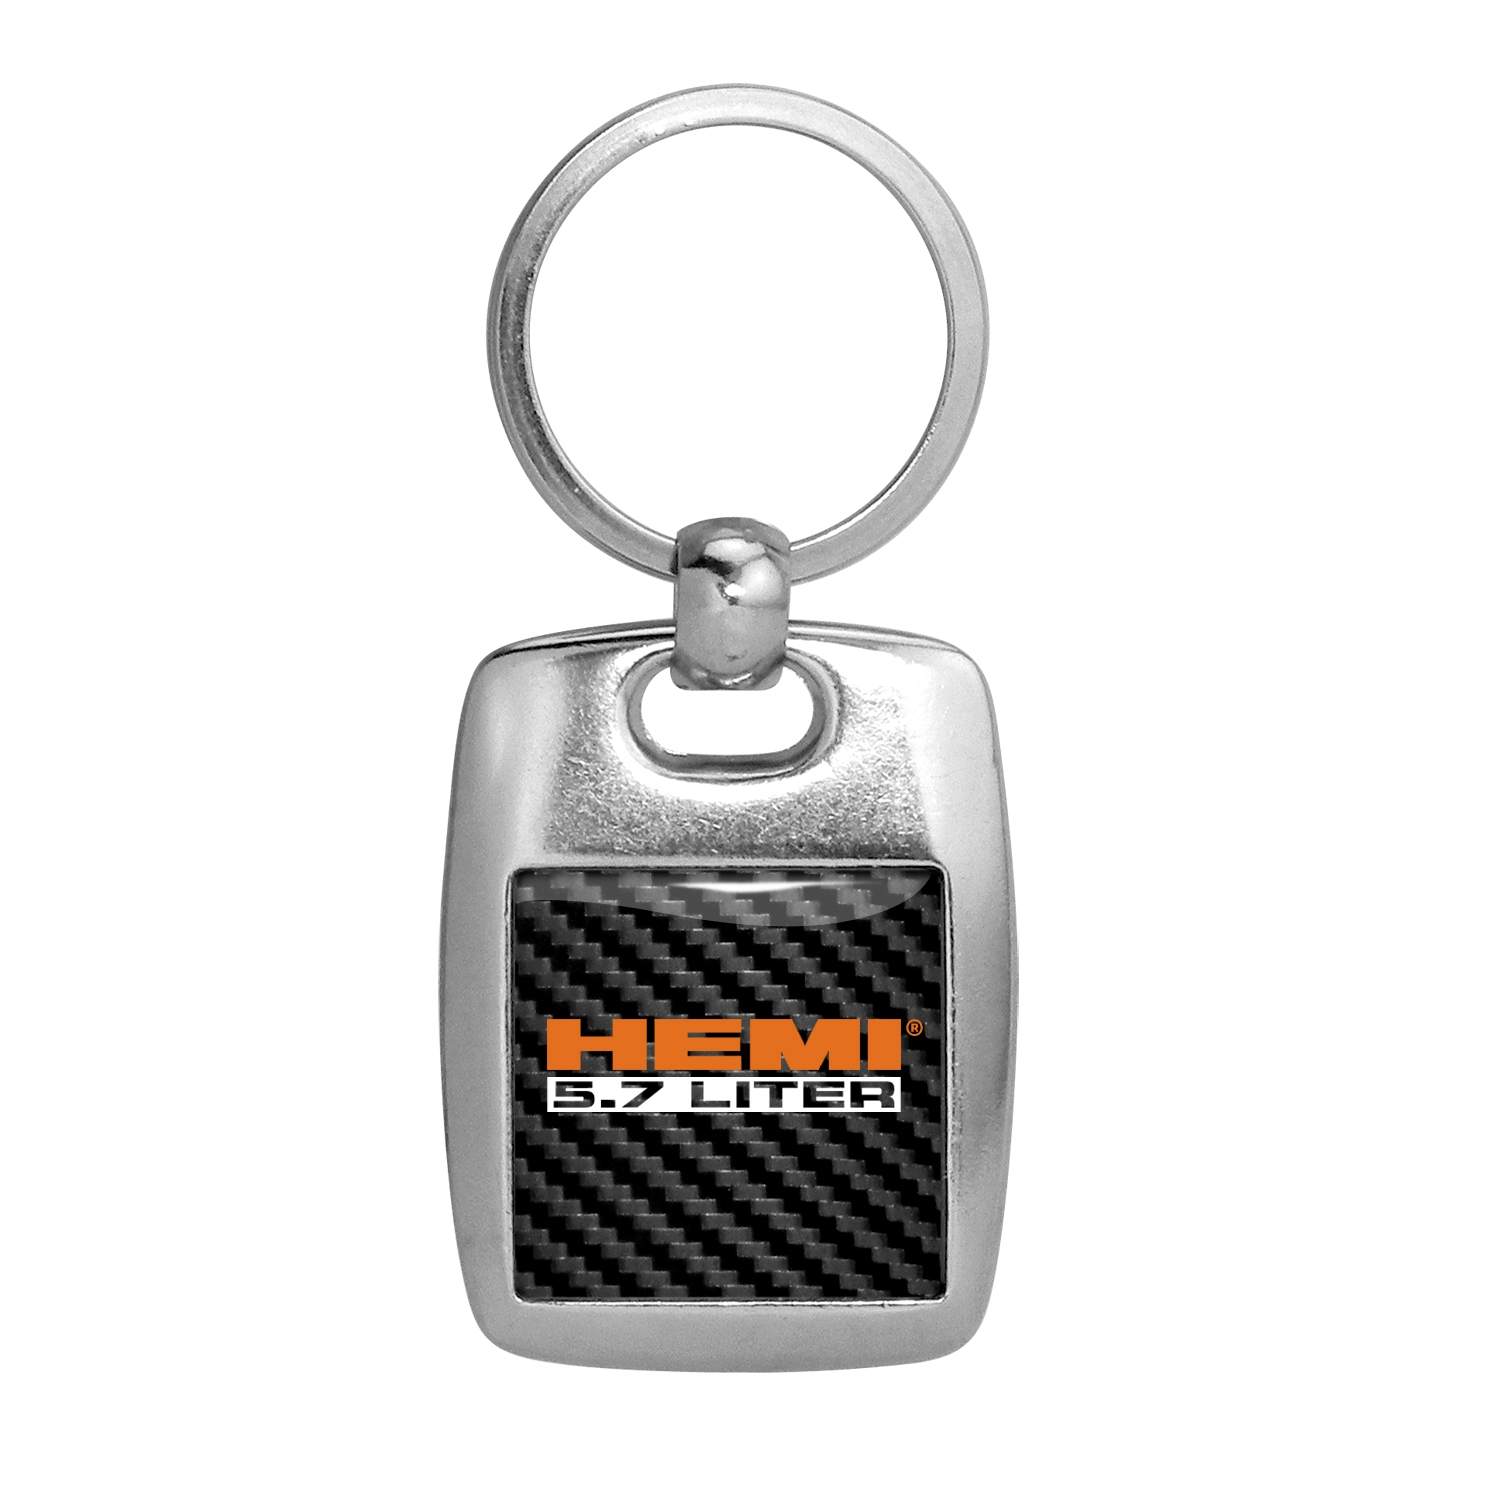 HEMI 5.7 Liter Carbon Fiber Backing Brush Metal Key Chain